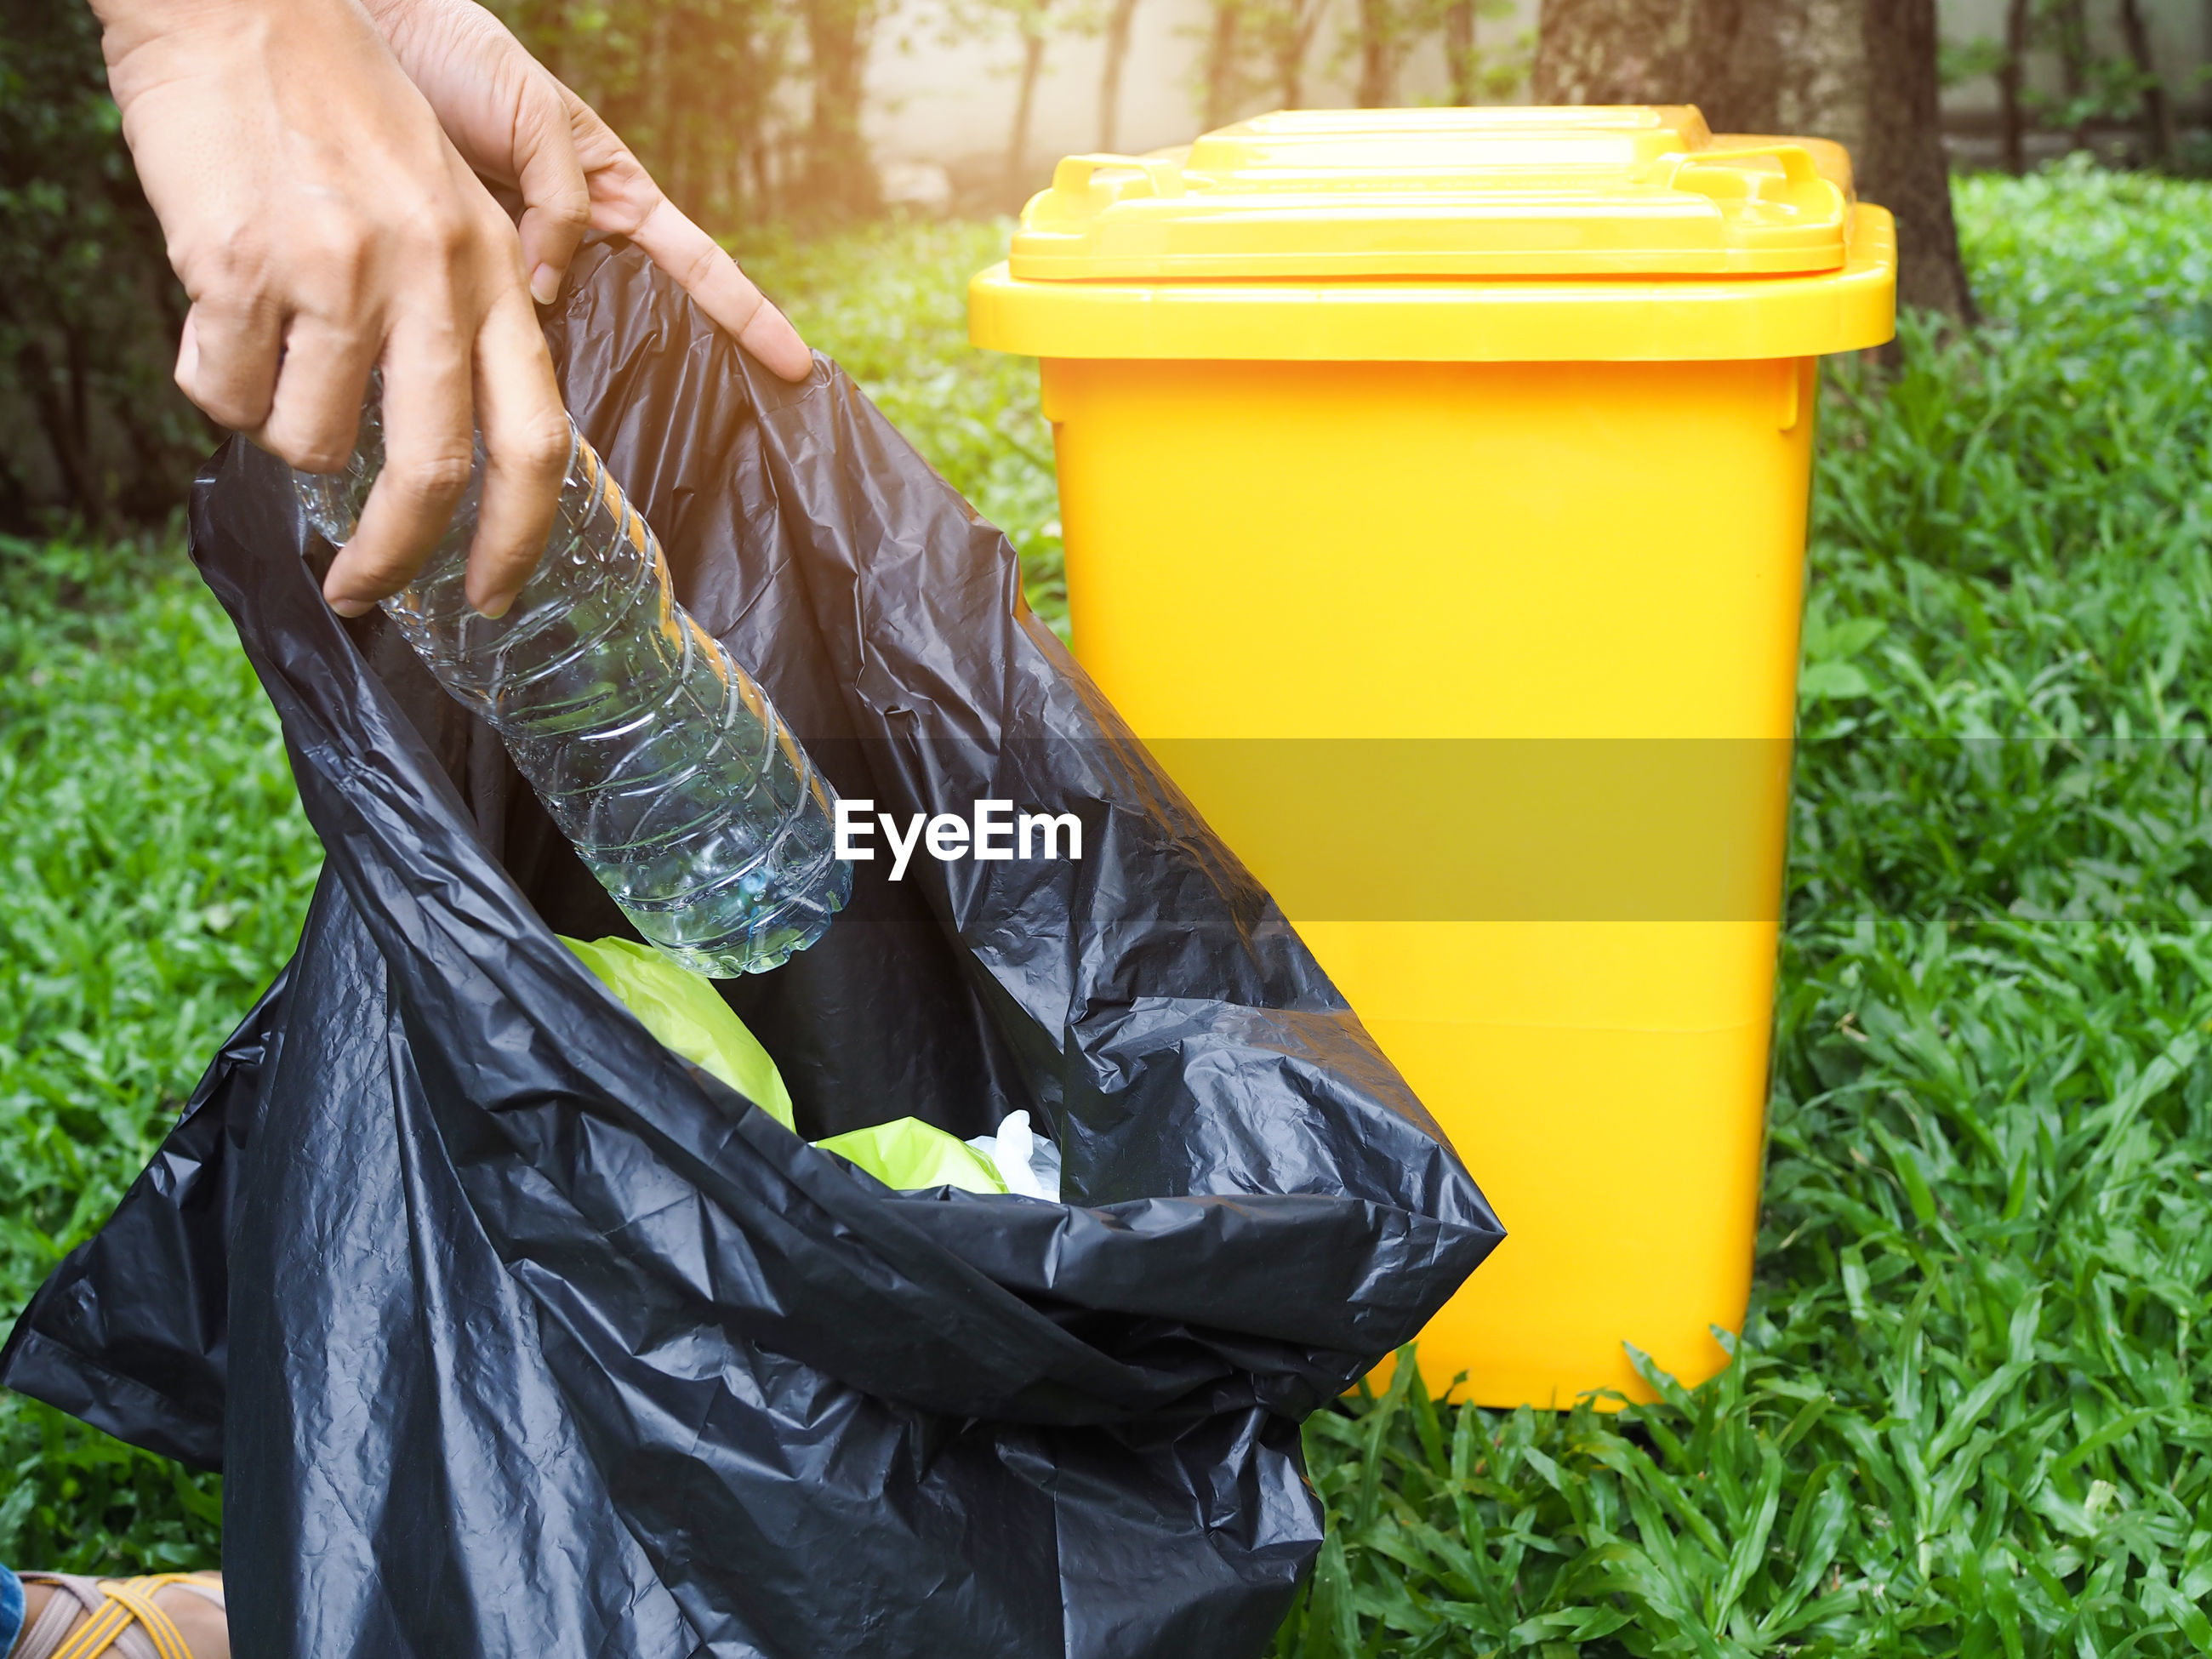 Cropped hands of person holding bottle in garbage bag by bin on grass